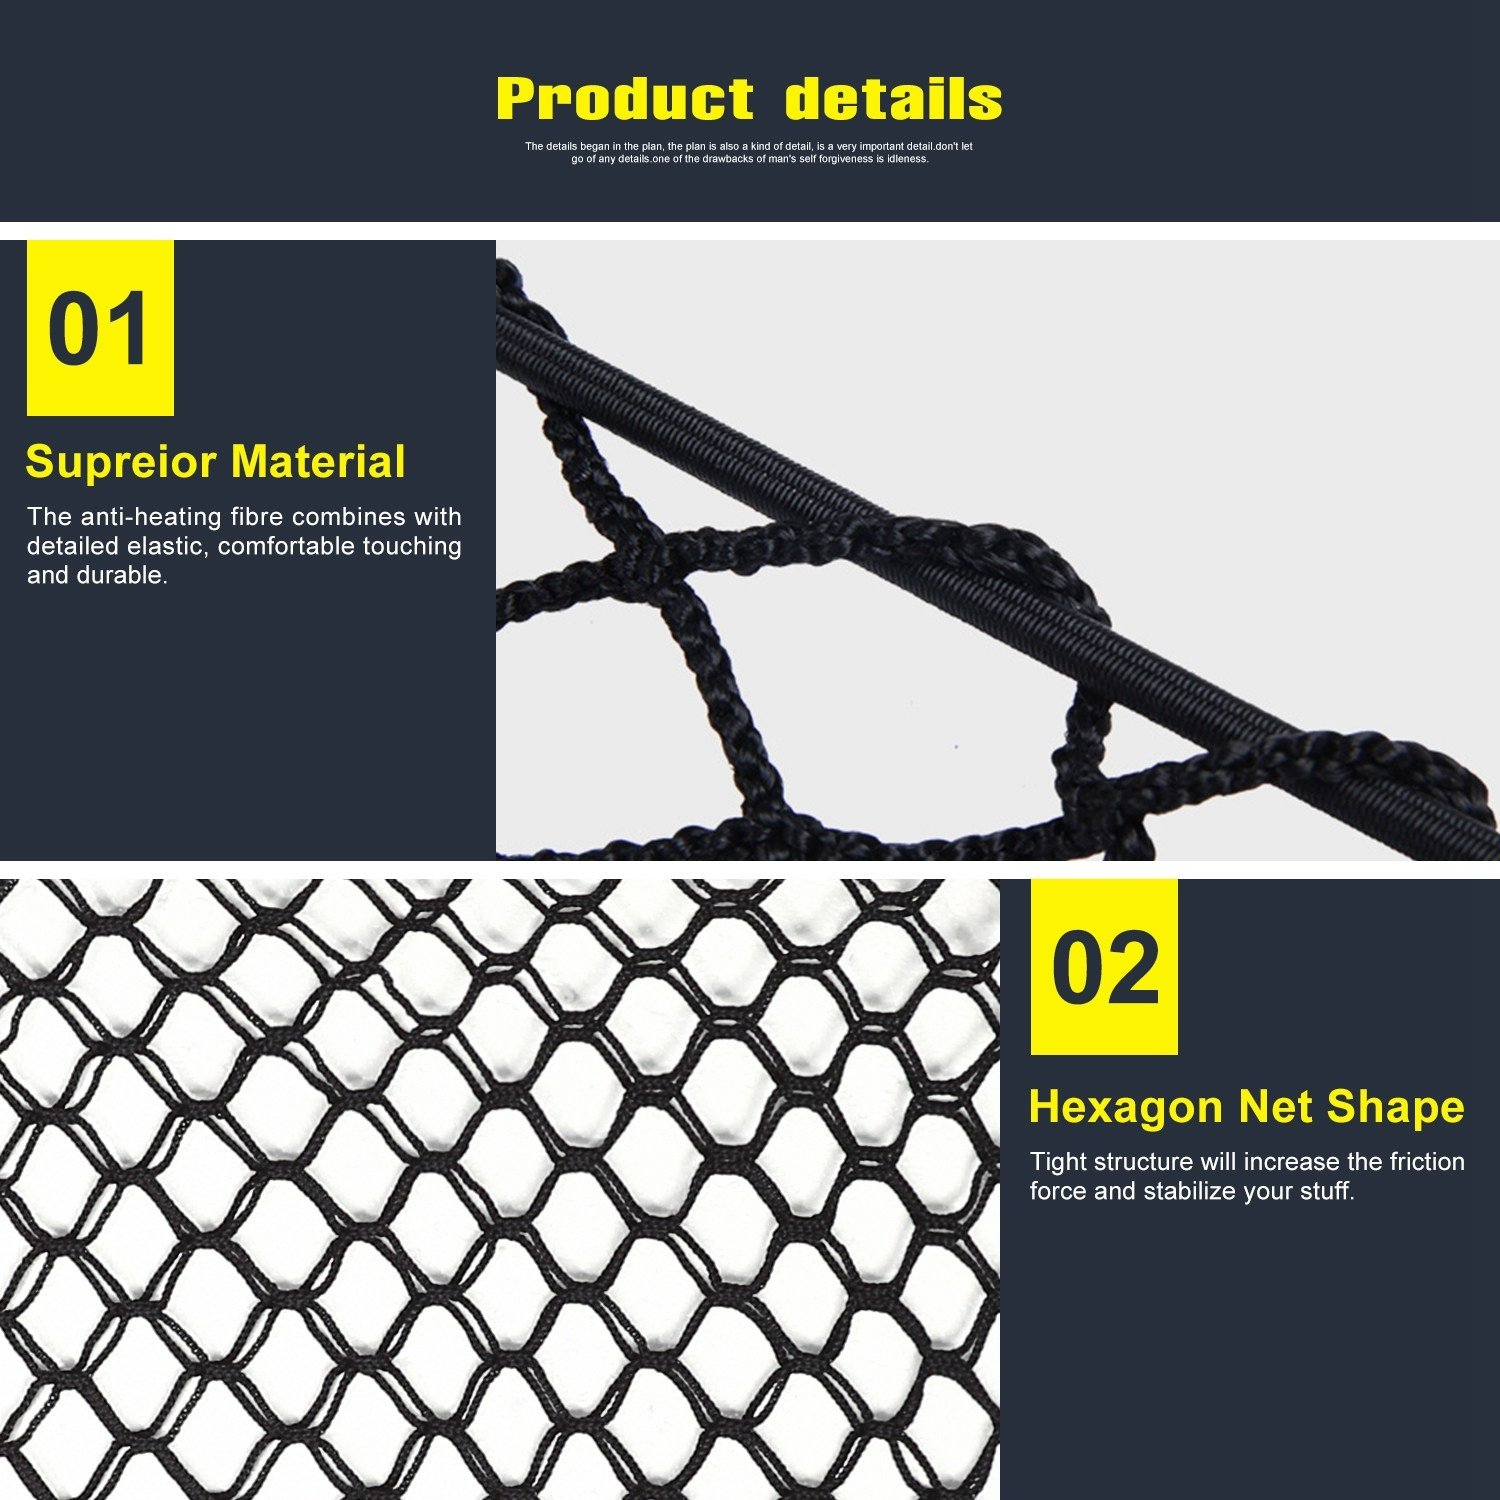 100x40cm Nylon Plastic Black Car Storage Bag Hook Pouch Cargo Net Truck Rear Cargo Net Luggage Organizer